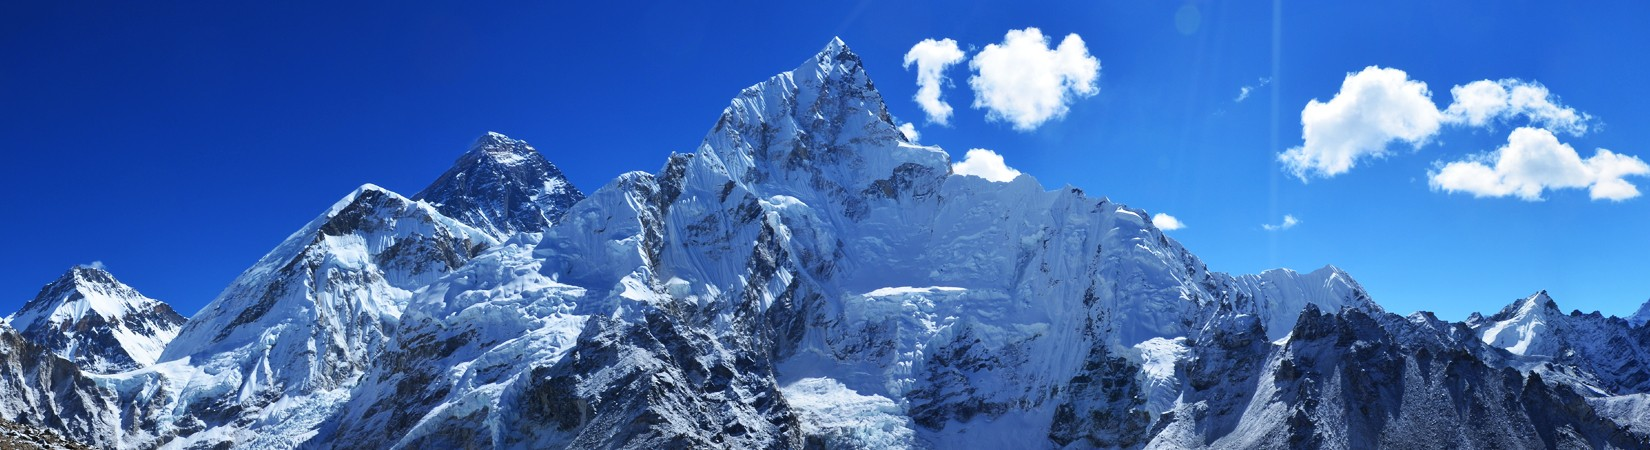 jiri everest base camp trekking